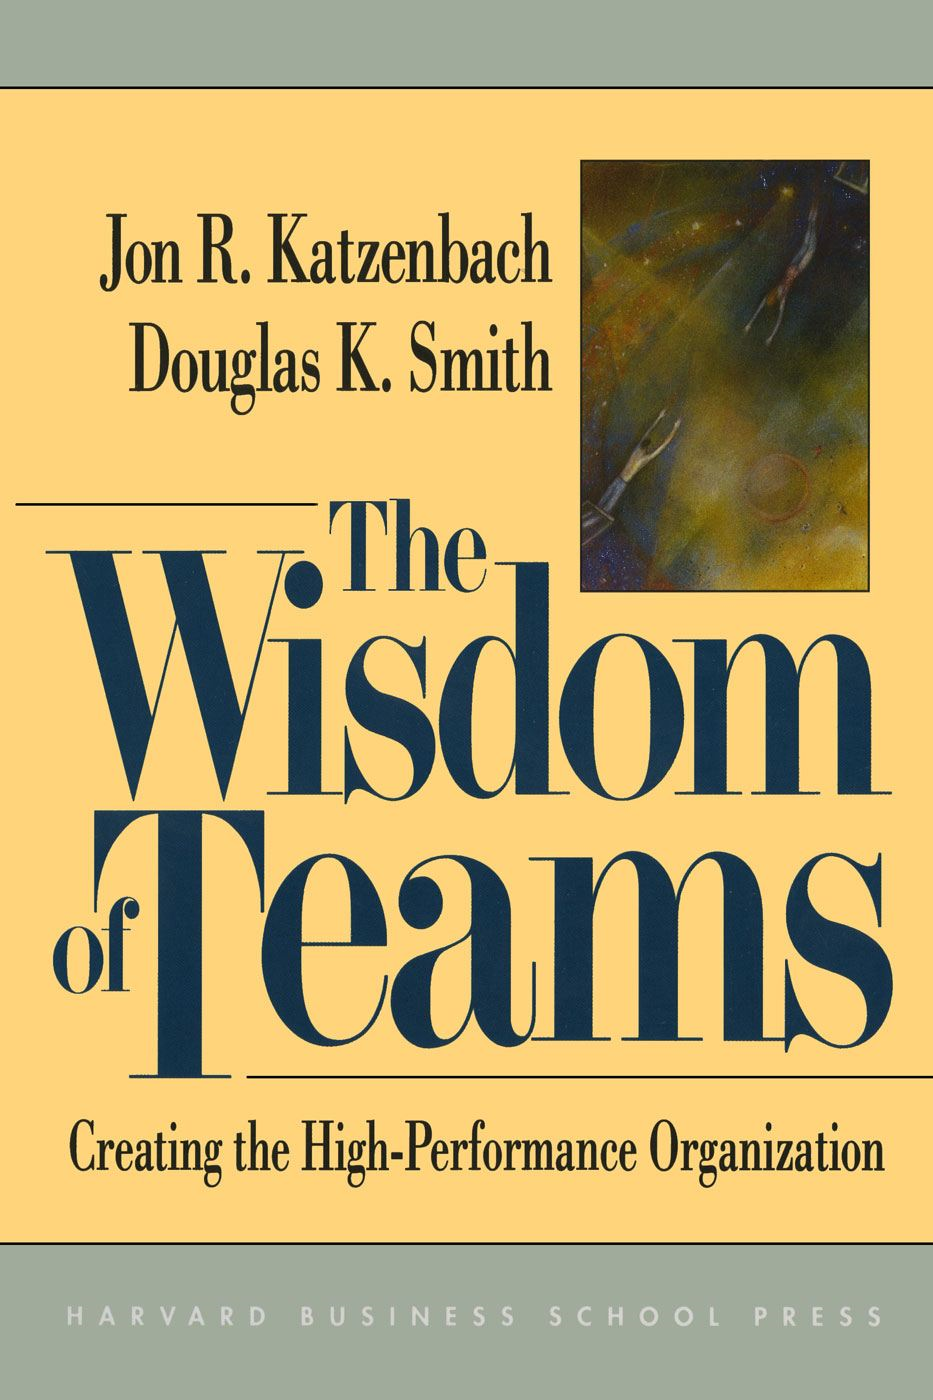 The Wisdom of Teams By: Douglas K. Smith,Jon R. Katzenbach